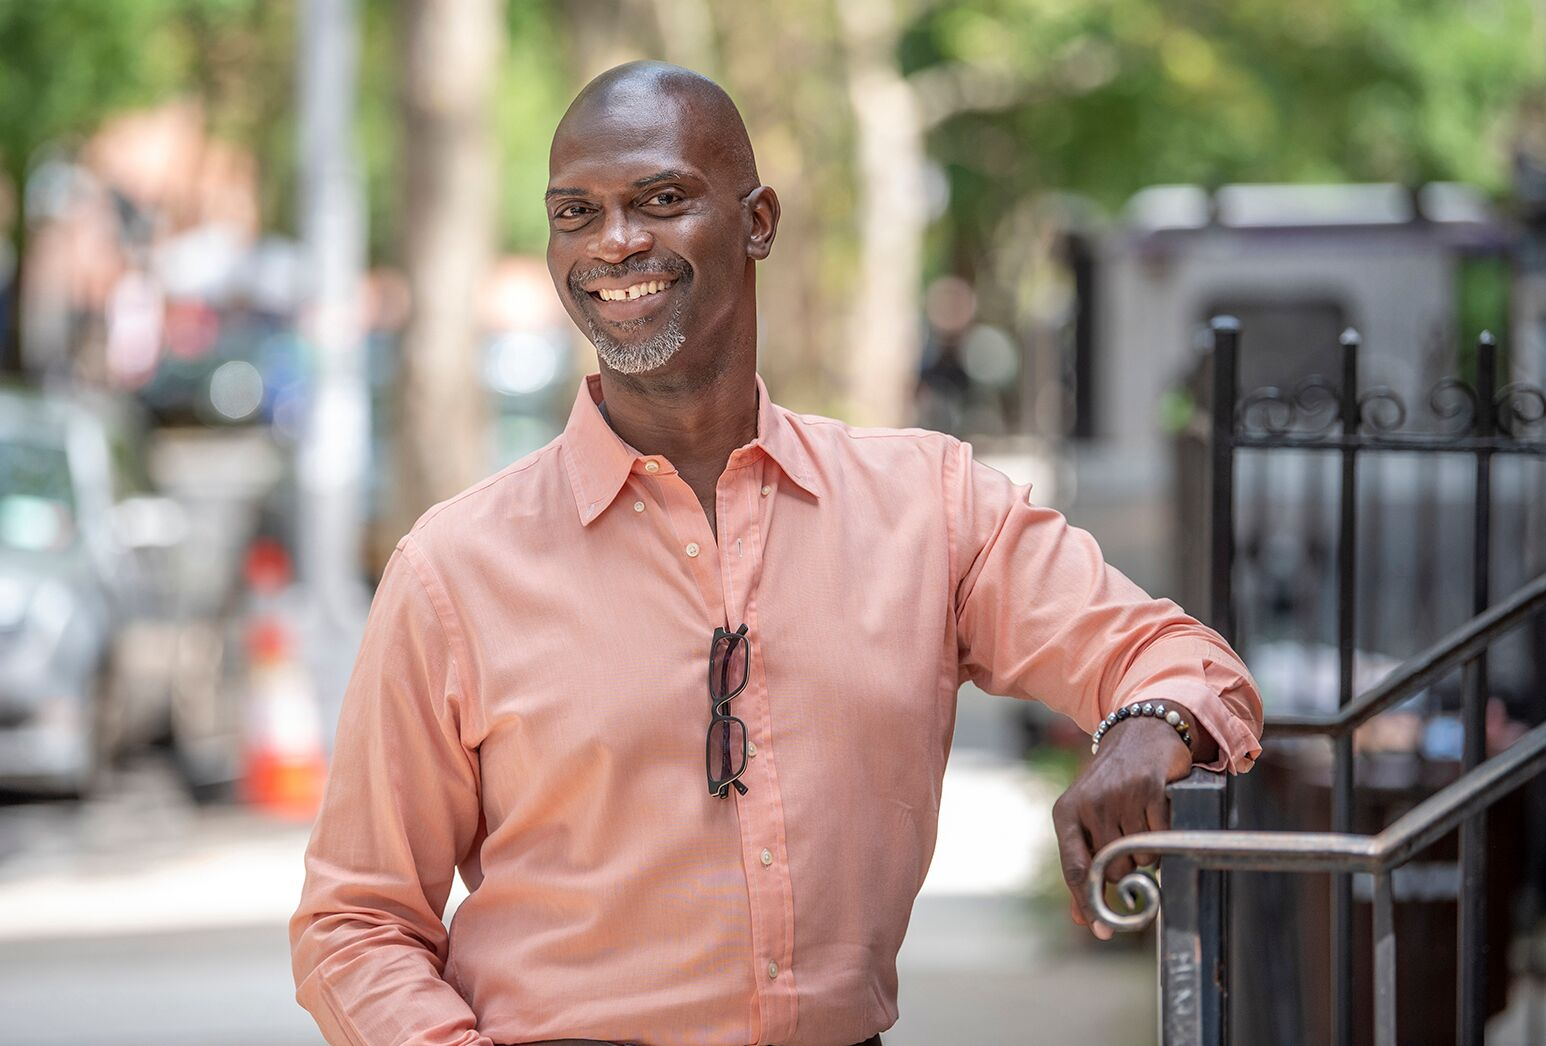 African American man in peach-colored, button-down shirt on a city street.